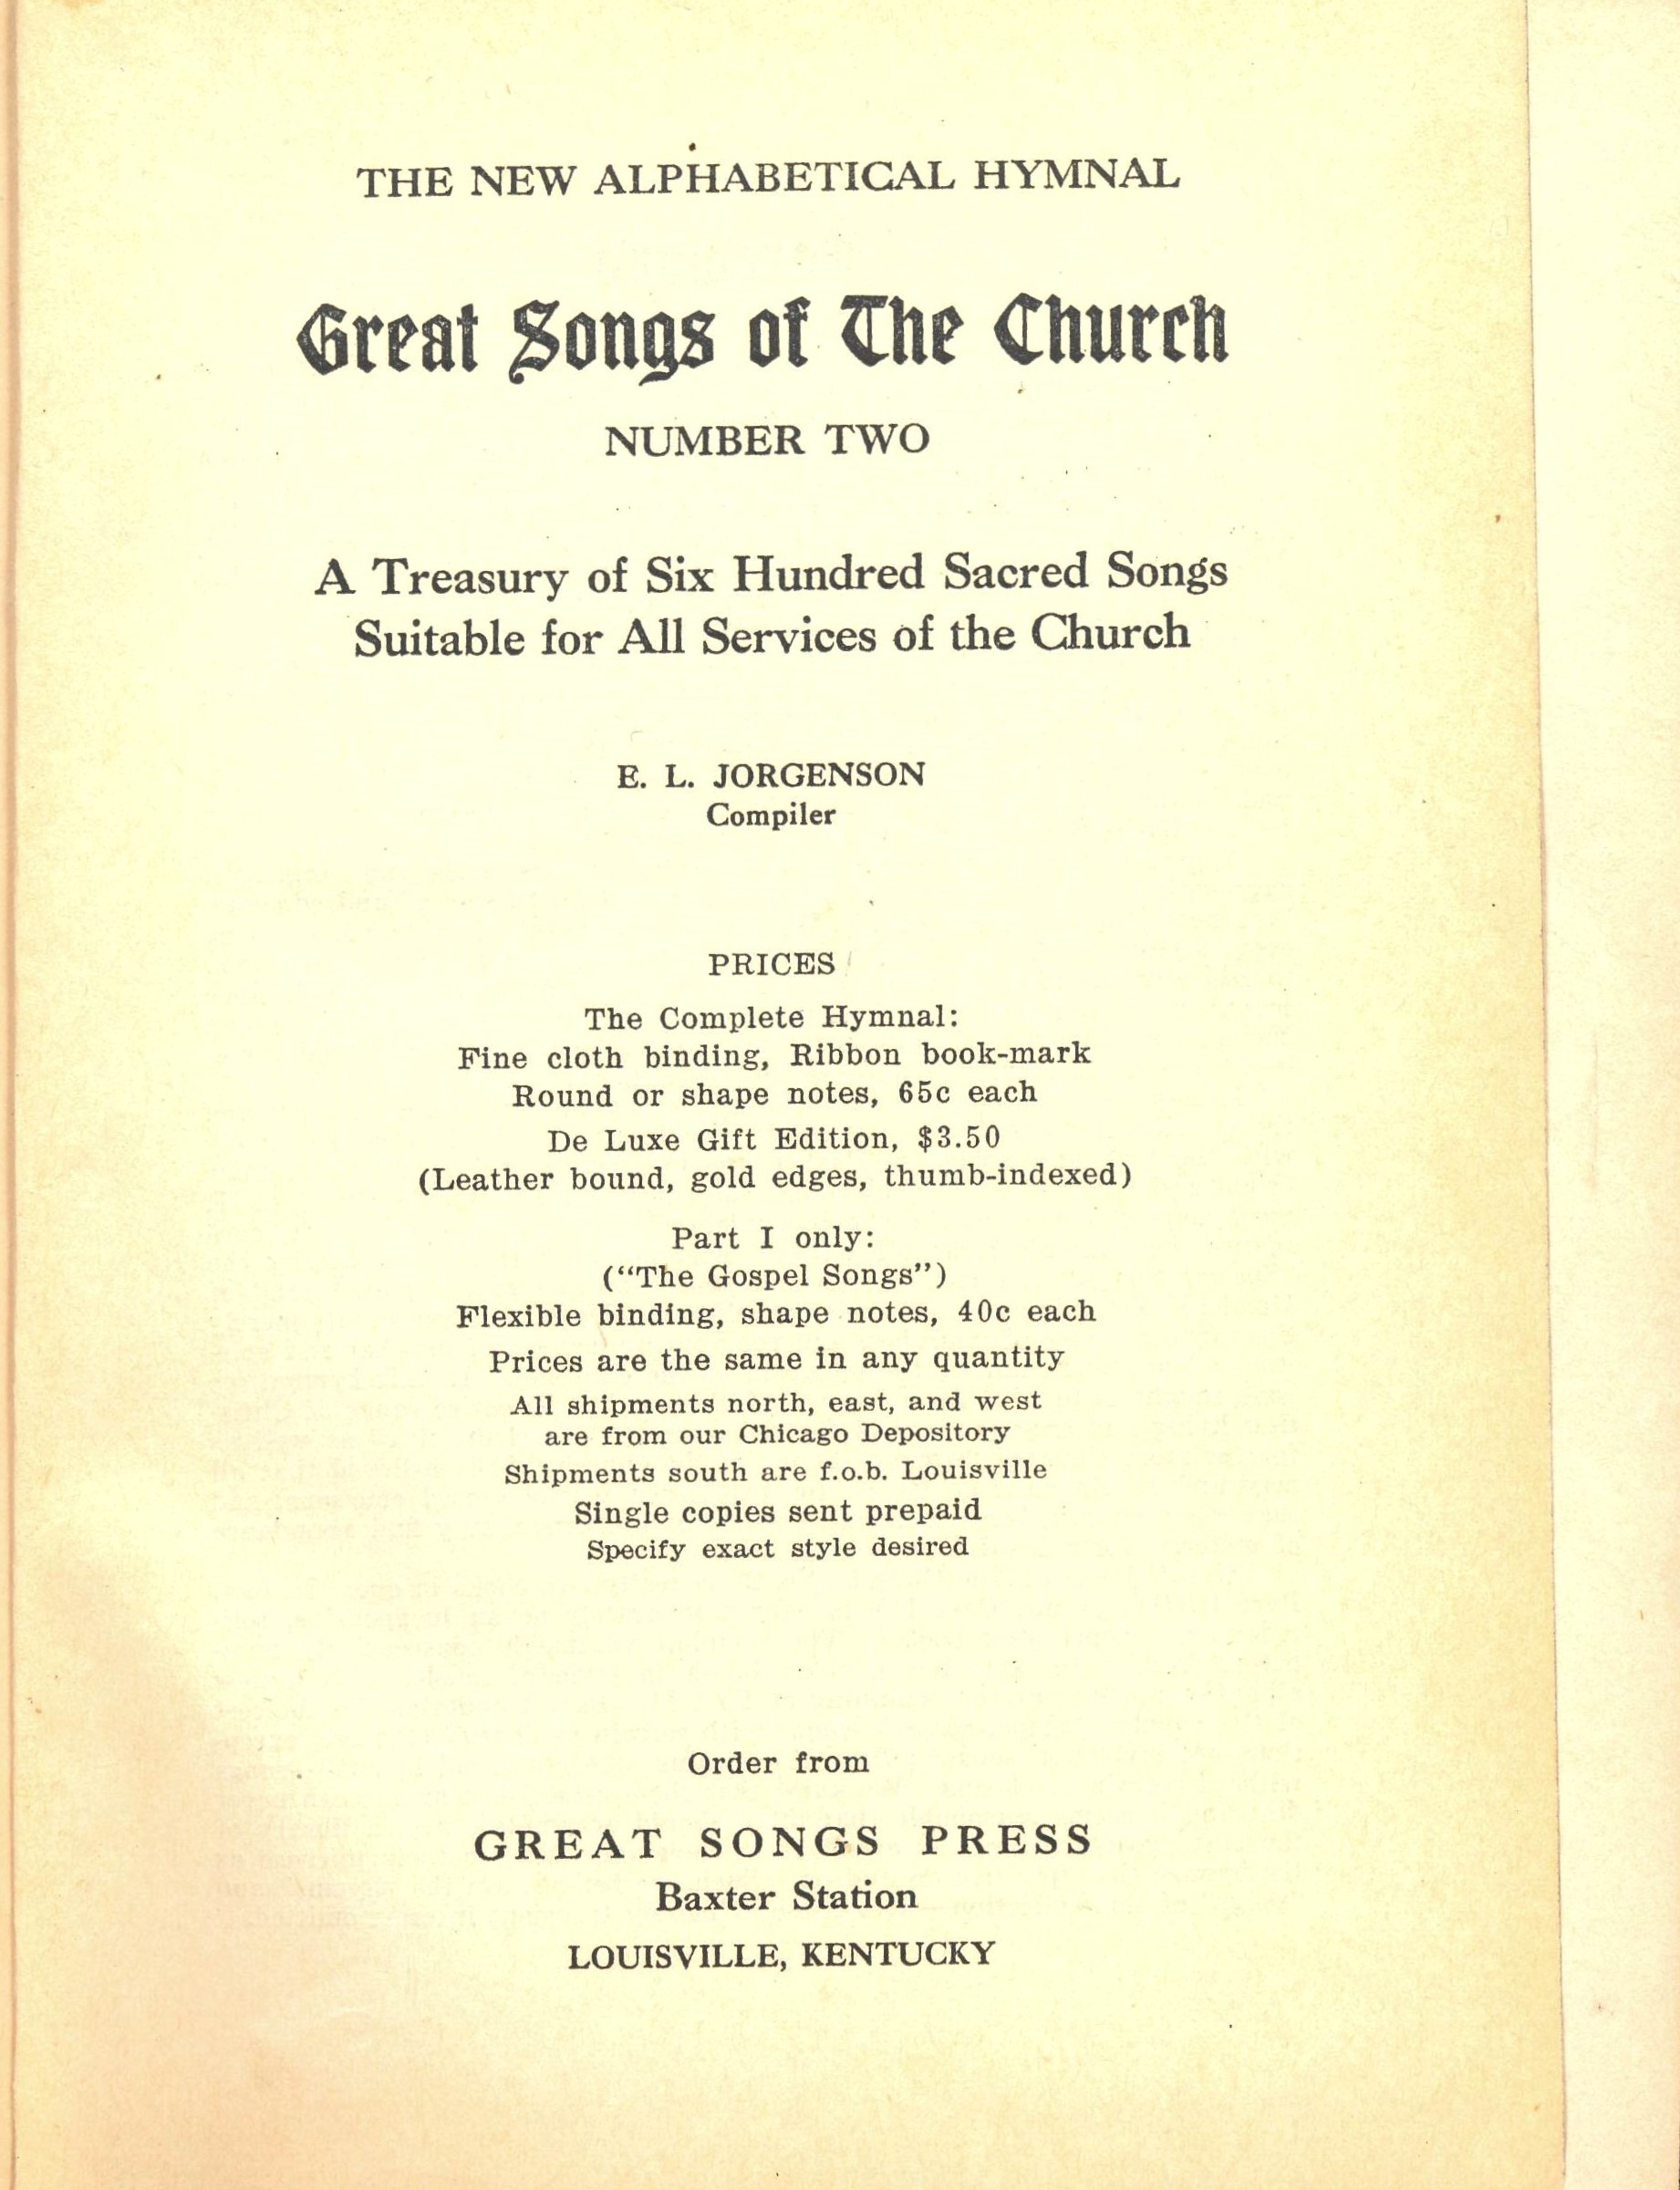 The New Alphabetical Hymnal. Great Songs of the Church Number Two. A Treasury of Six Hundred Sacred Songs Suitable for All Services of the Church. E. L. Jorgenson, Compiler. Great Songs Press: Louisville, 1937.